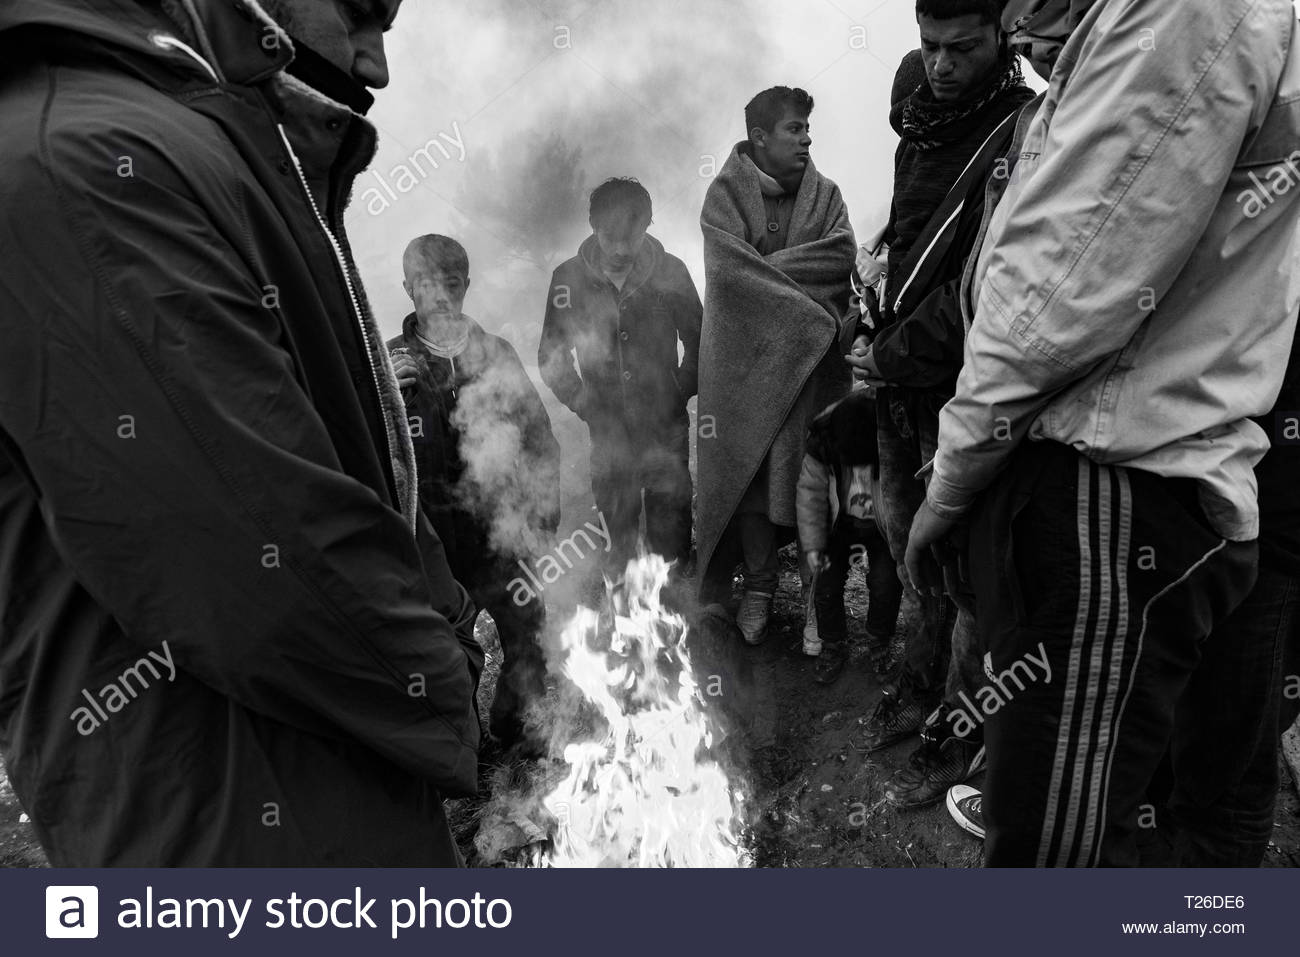 In the evening temperature are below zero, therefore refugees warming themselves by lighting fires at Greek-Macedonian border.  Idomeni, Greece, 8 March 2016.The refugee camp to which thousands of immigrants, mainly Syrians, are coming. It is occupied by people from different social strata. They are all found there fleeing the war, death and starvation. They continue their journey through Macedonia to the north and west of Europe. Not everyone manages to pass the verification of the documents, which leads to the separation of families. The refugees are living in difficult conditions. - Stock Image